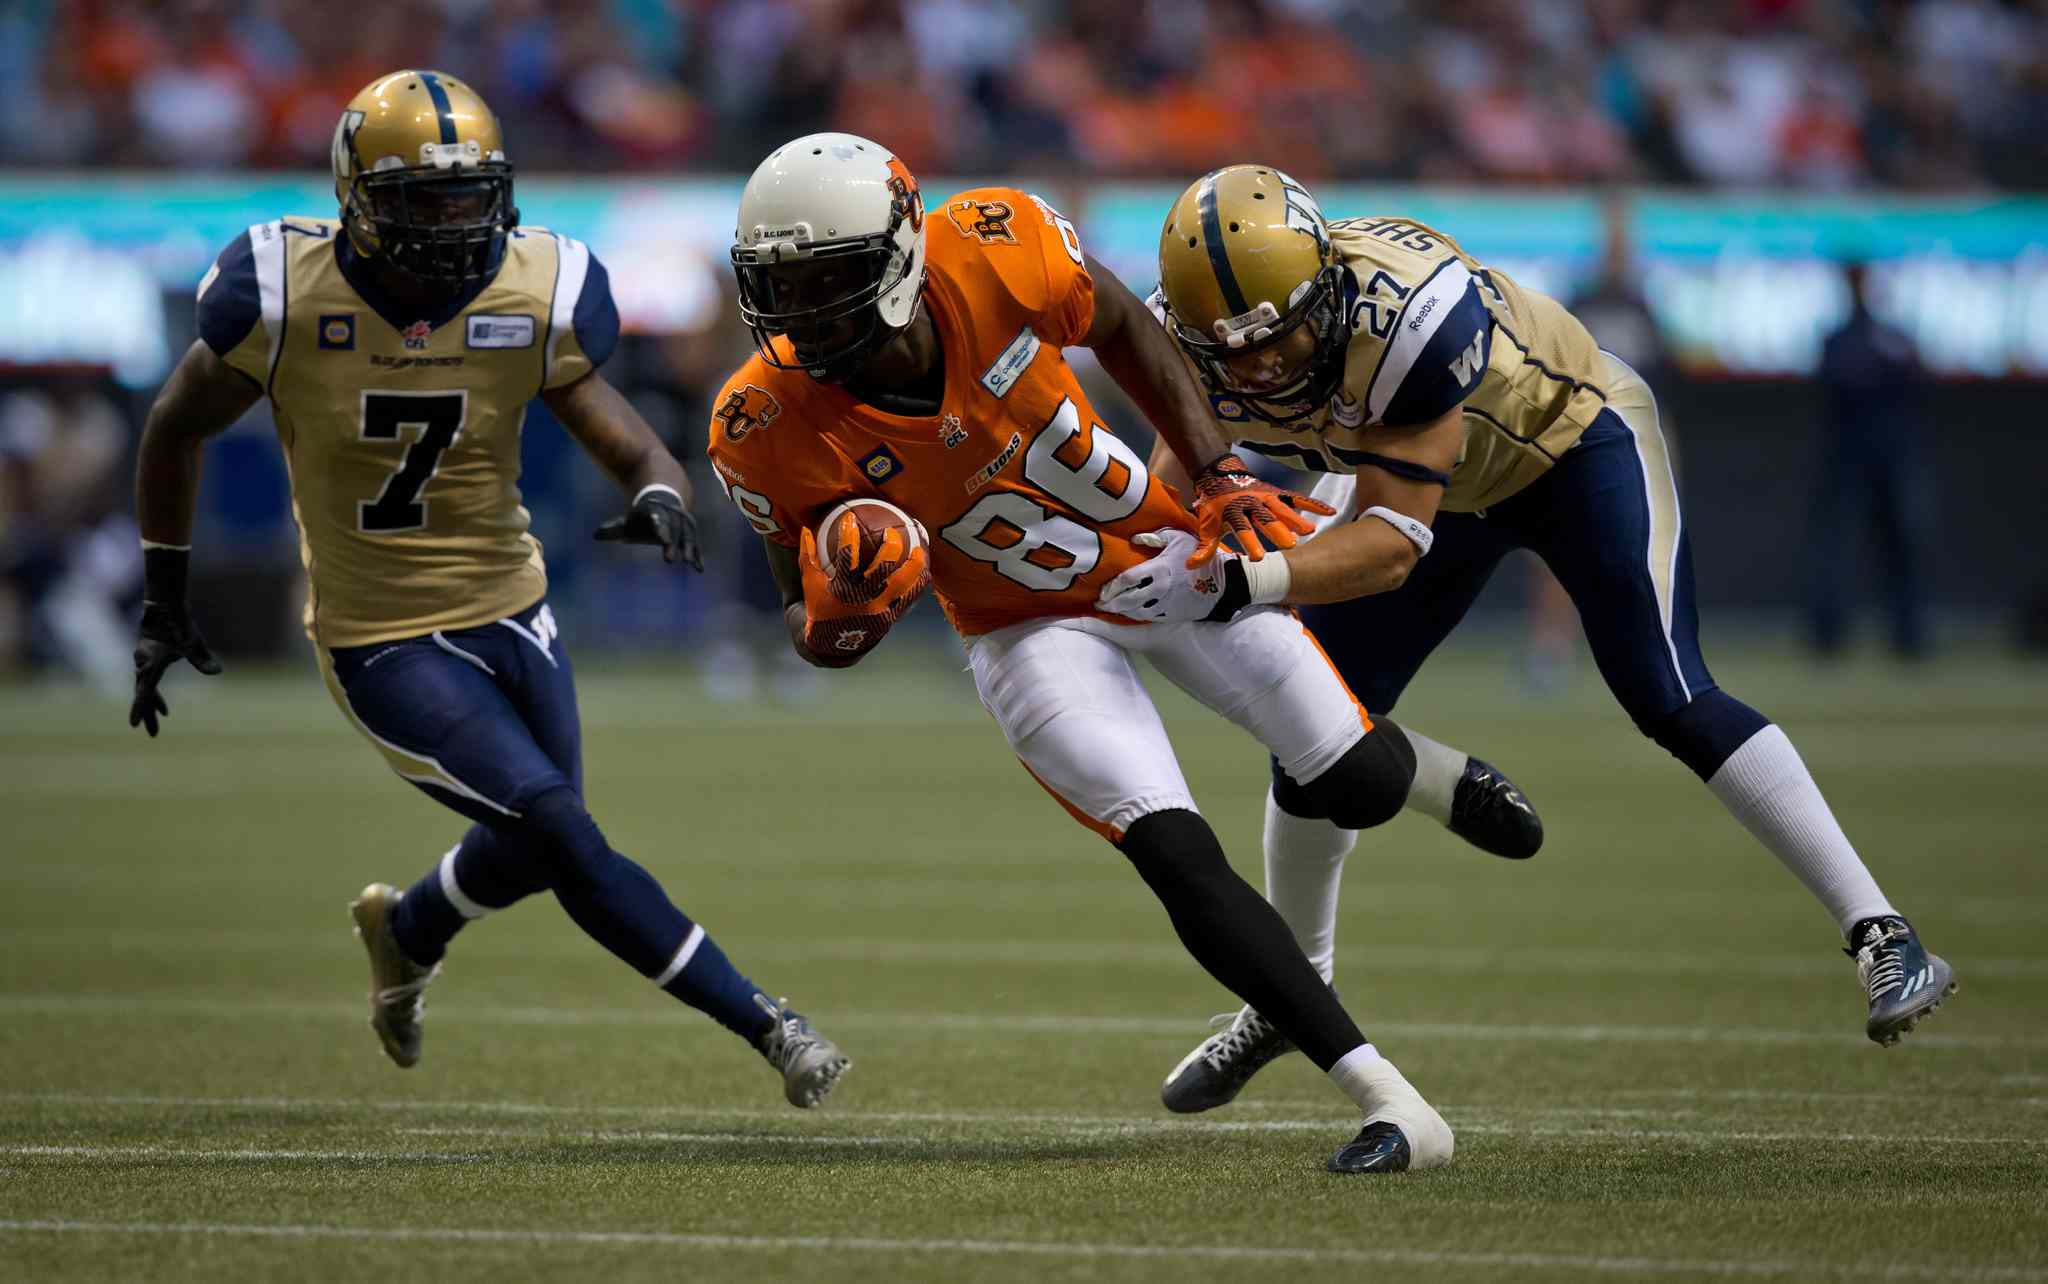 B.C. Lions' Courtney Taylor, centre, is grabbed by Winnipeg Blue Bombers' Teague Sherman, right, as Demond Washington, left, trails the play during the first half of Friday's game.